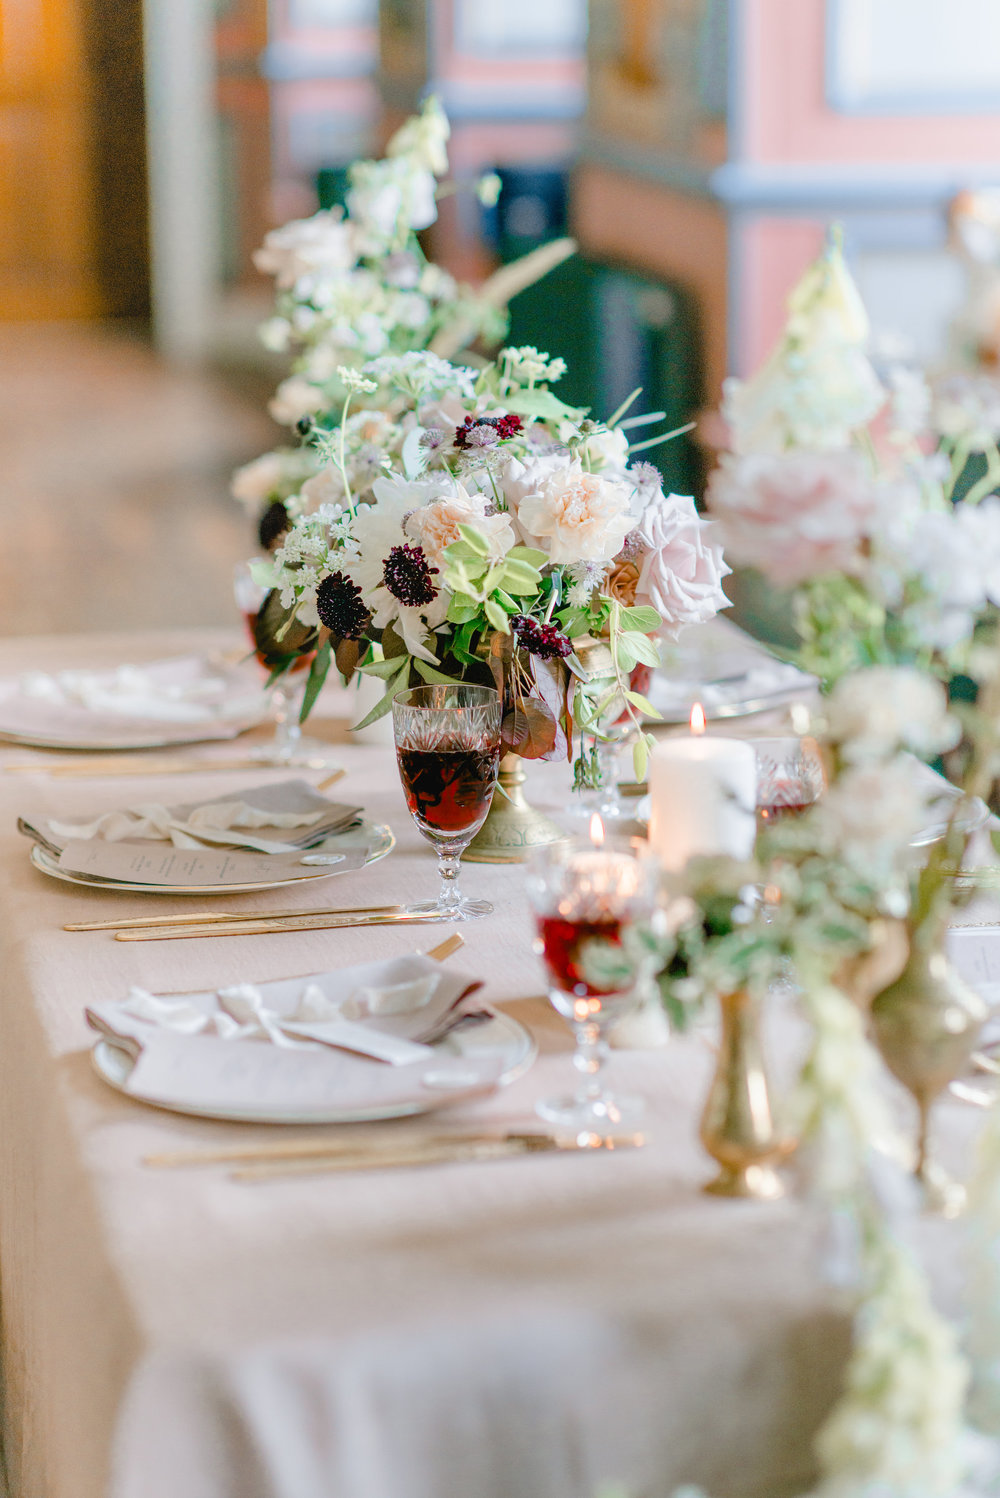 The Timeless Stylist-Elegant and Romantic Wedding Styling-Dusky Pink Tablecloth